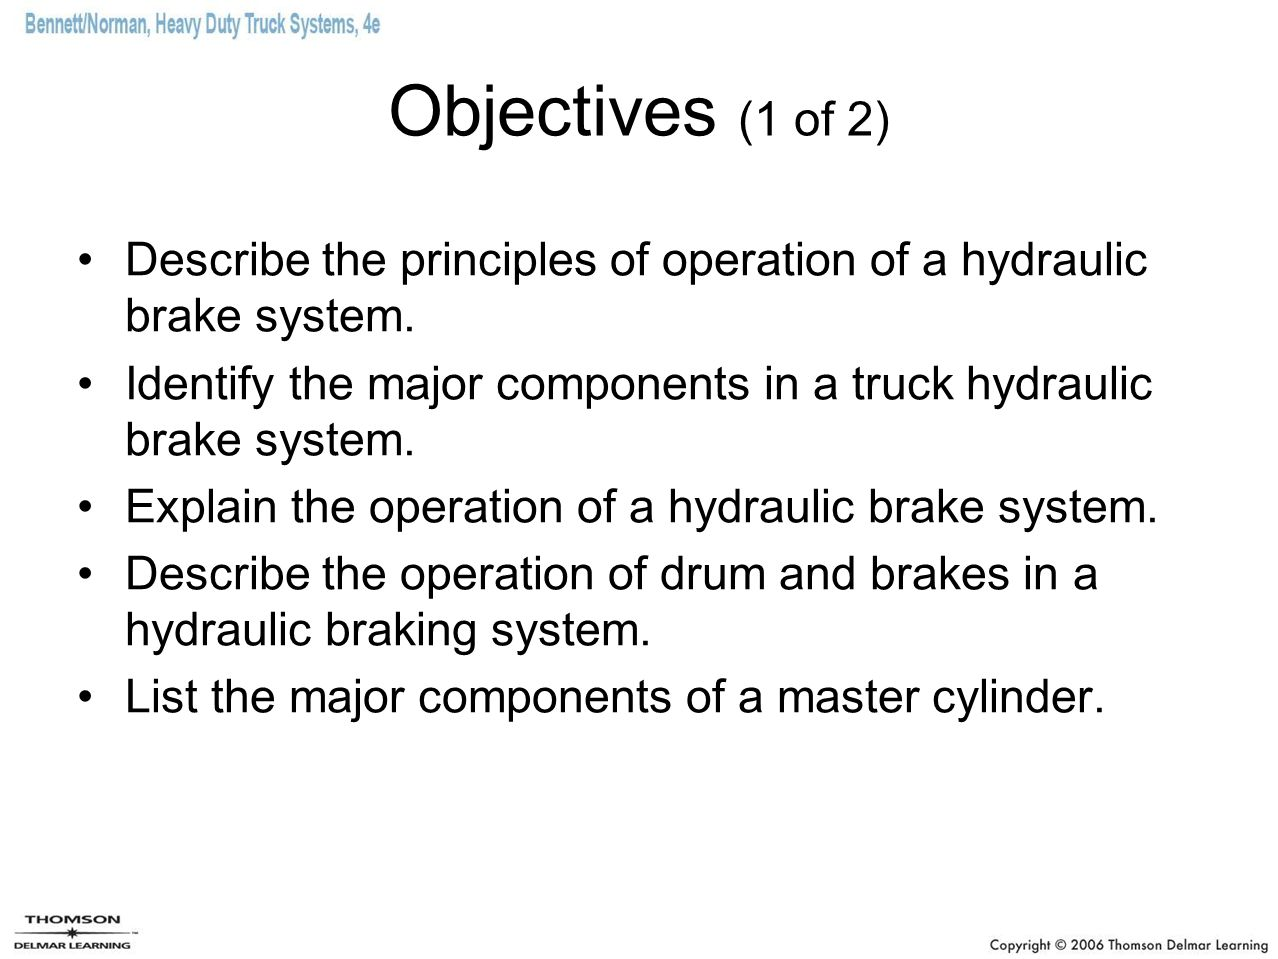 Objectives (1 of 2) Describe the principles of operation of a hydraulic brake system.